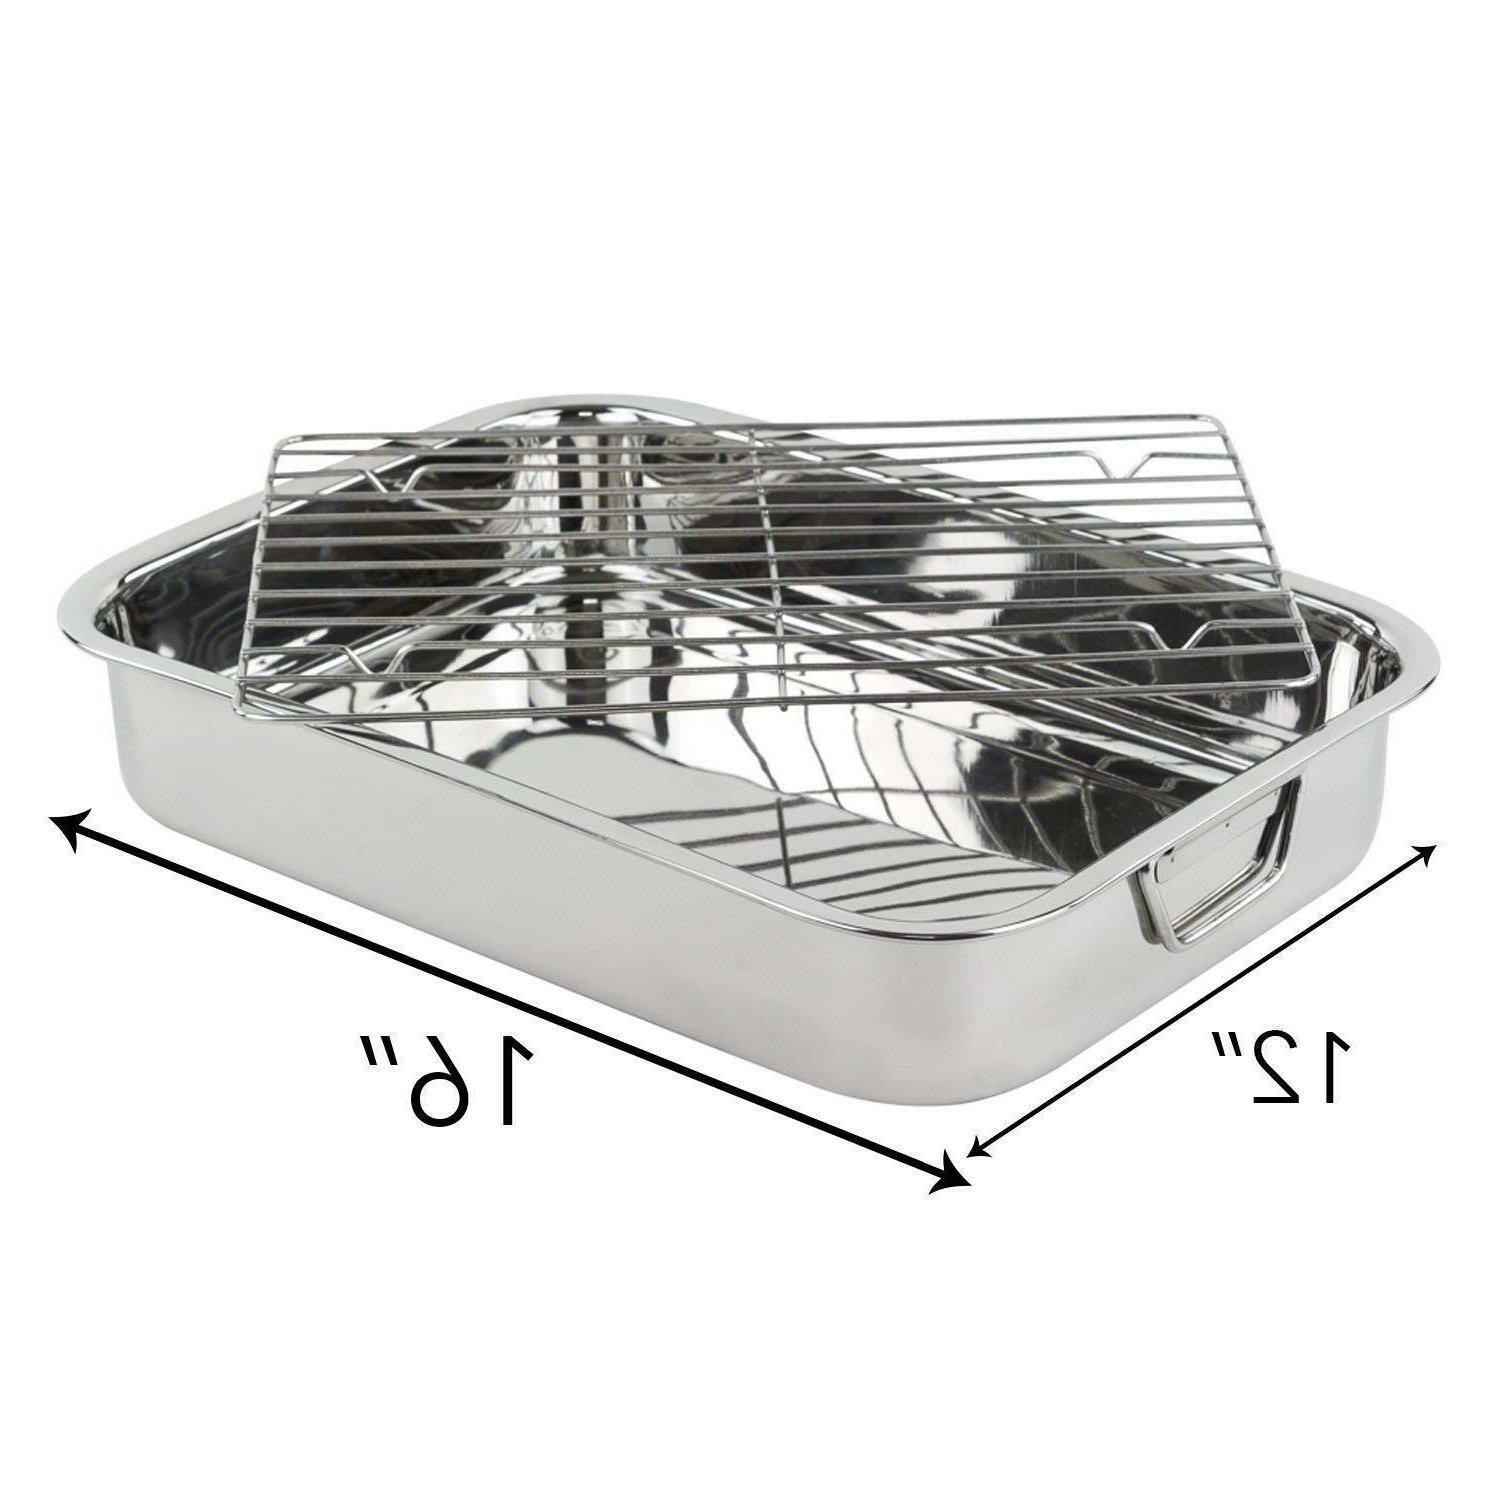 Set of Stainless Steel x inch w